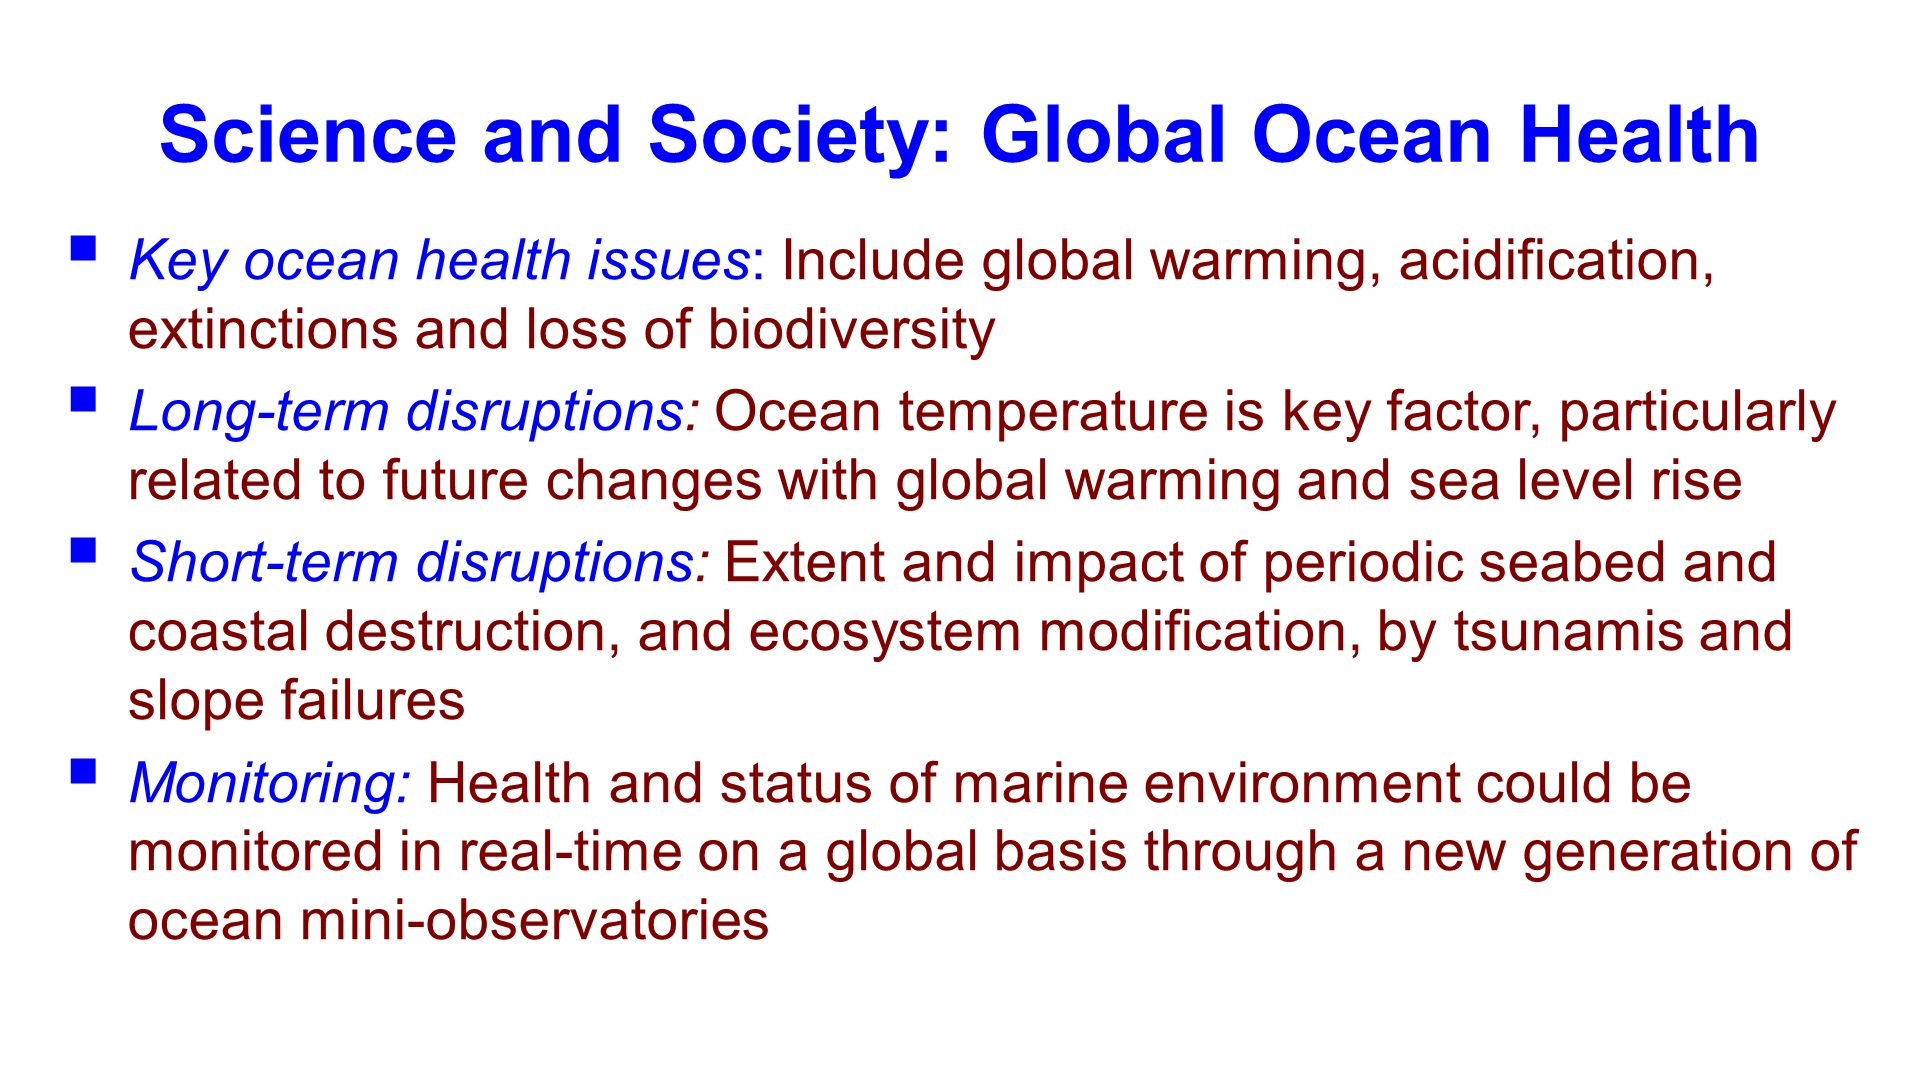 Science and Society: Global Ocean Health Key ocean health issues: Include global warming, acidification, extinctions and loss of biodiversity Long-term disruptions: Ocean temperature is key factor, particularly related to future changes with global warming and sea level rise Short-term disruptions: Extent and impact of periodic seabed and coastal destruction, and ecosystem modification, by tsunamis and slope failures Monitoring: Health and status of marine environment could be monitored in real-time on a global basis through a new generation of ocean mini-observatories